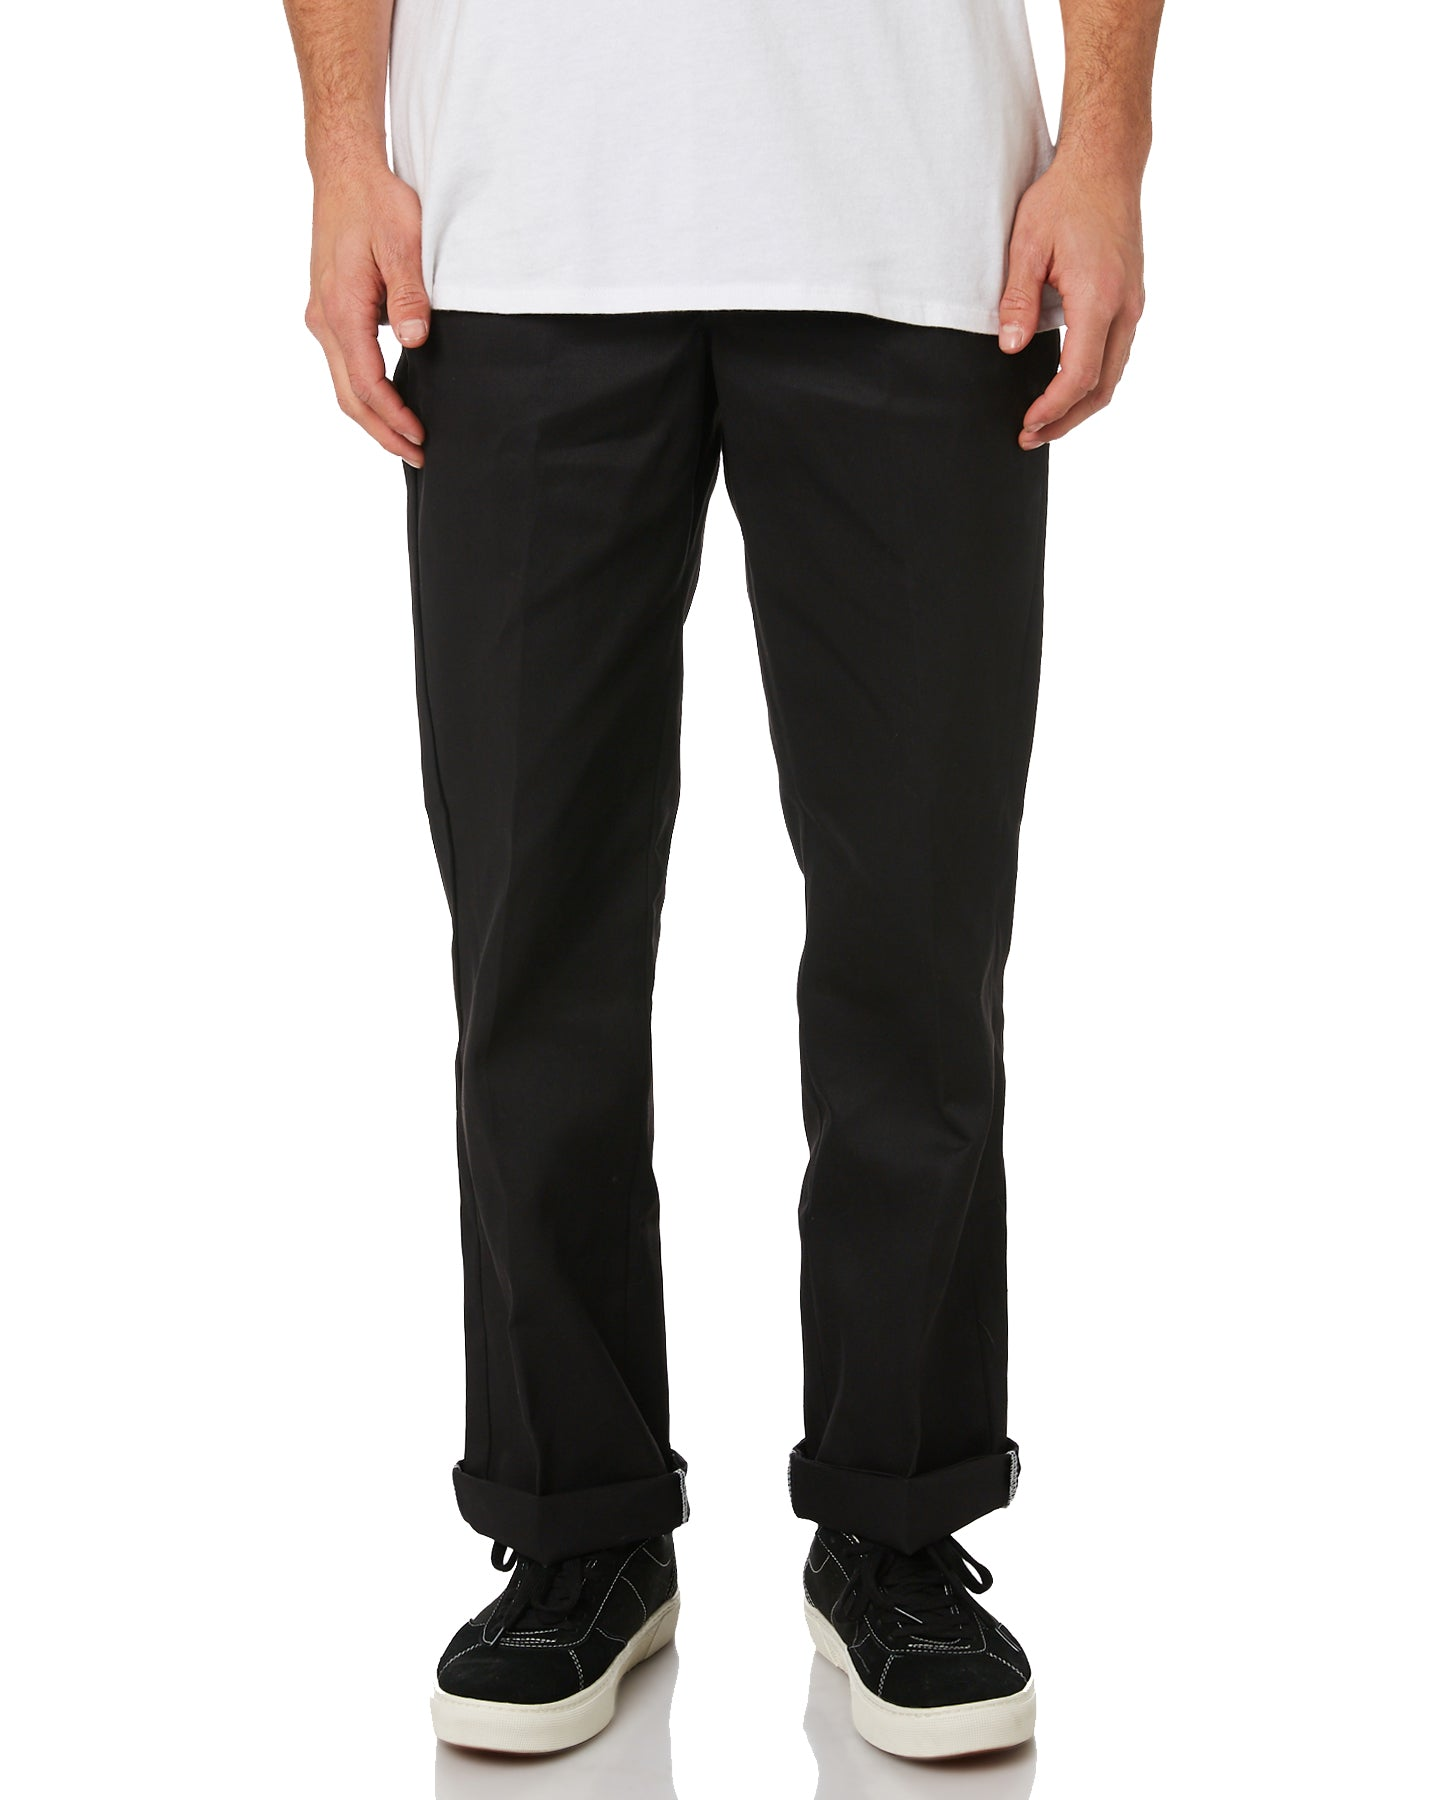 Dickies Original 874 Pant Mens - Black